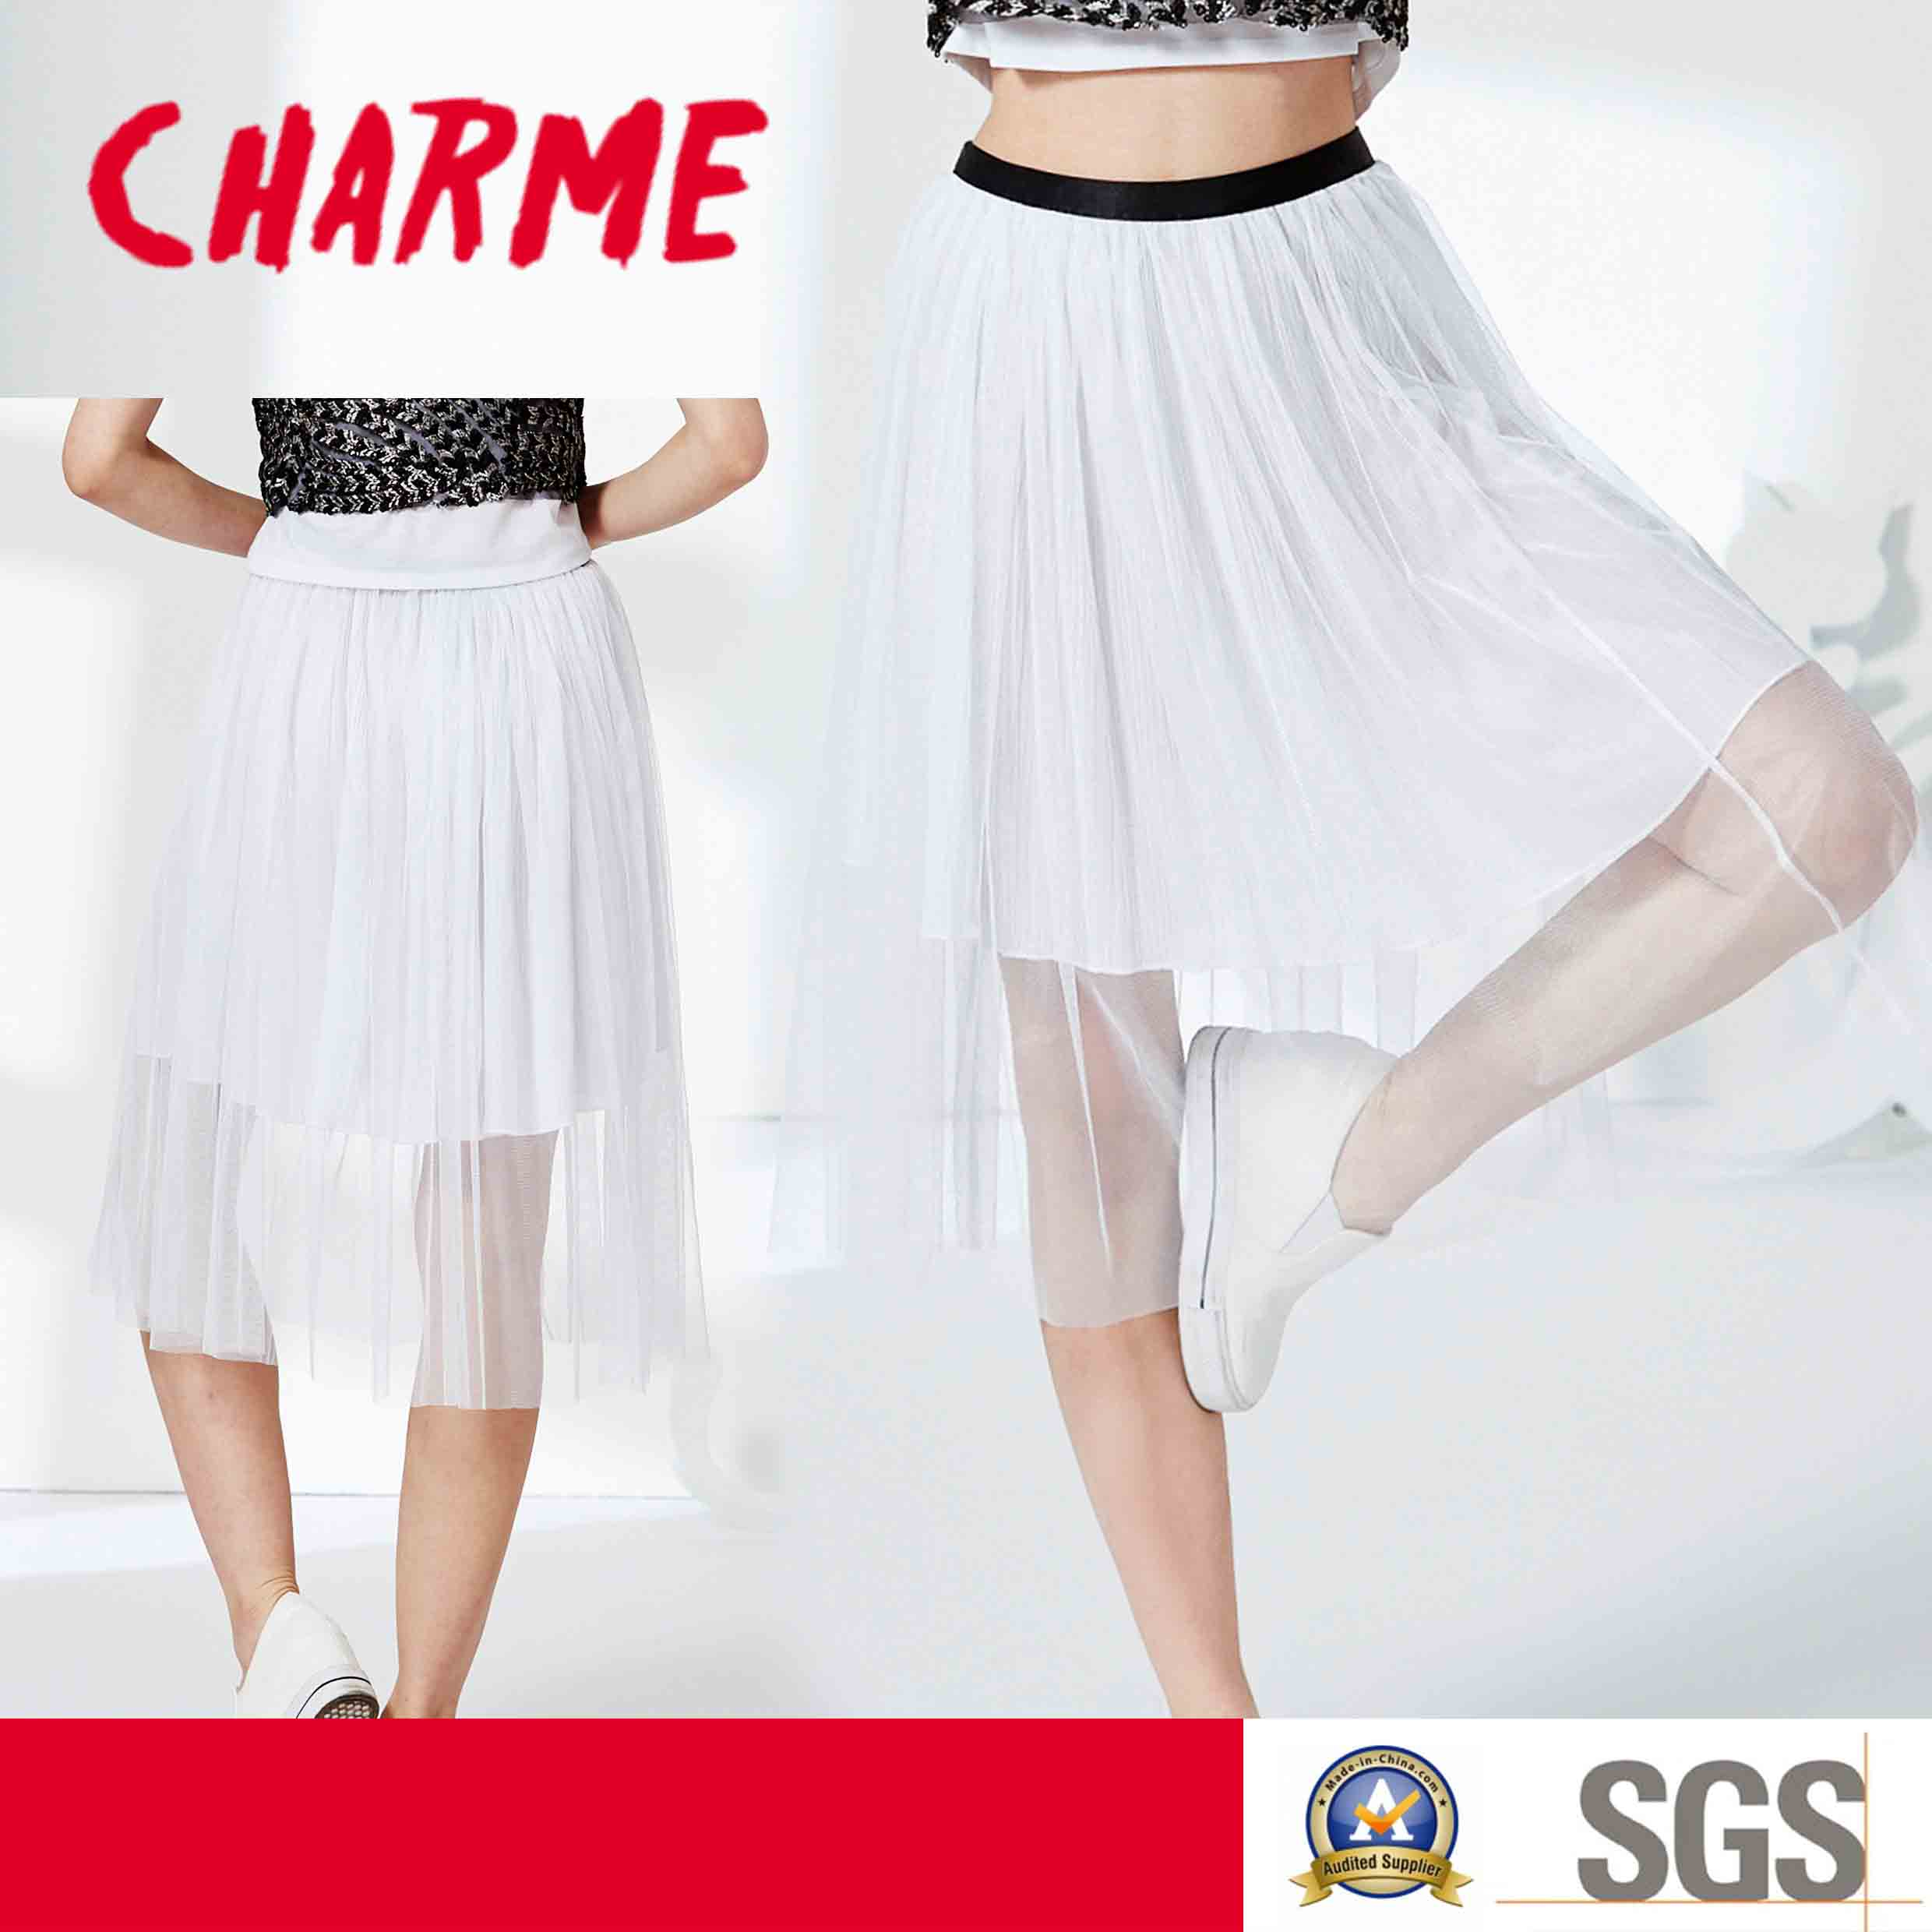 charme fashion clothes